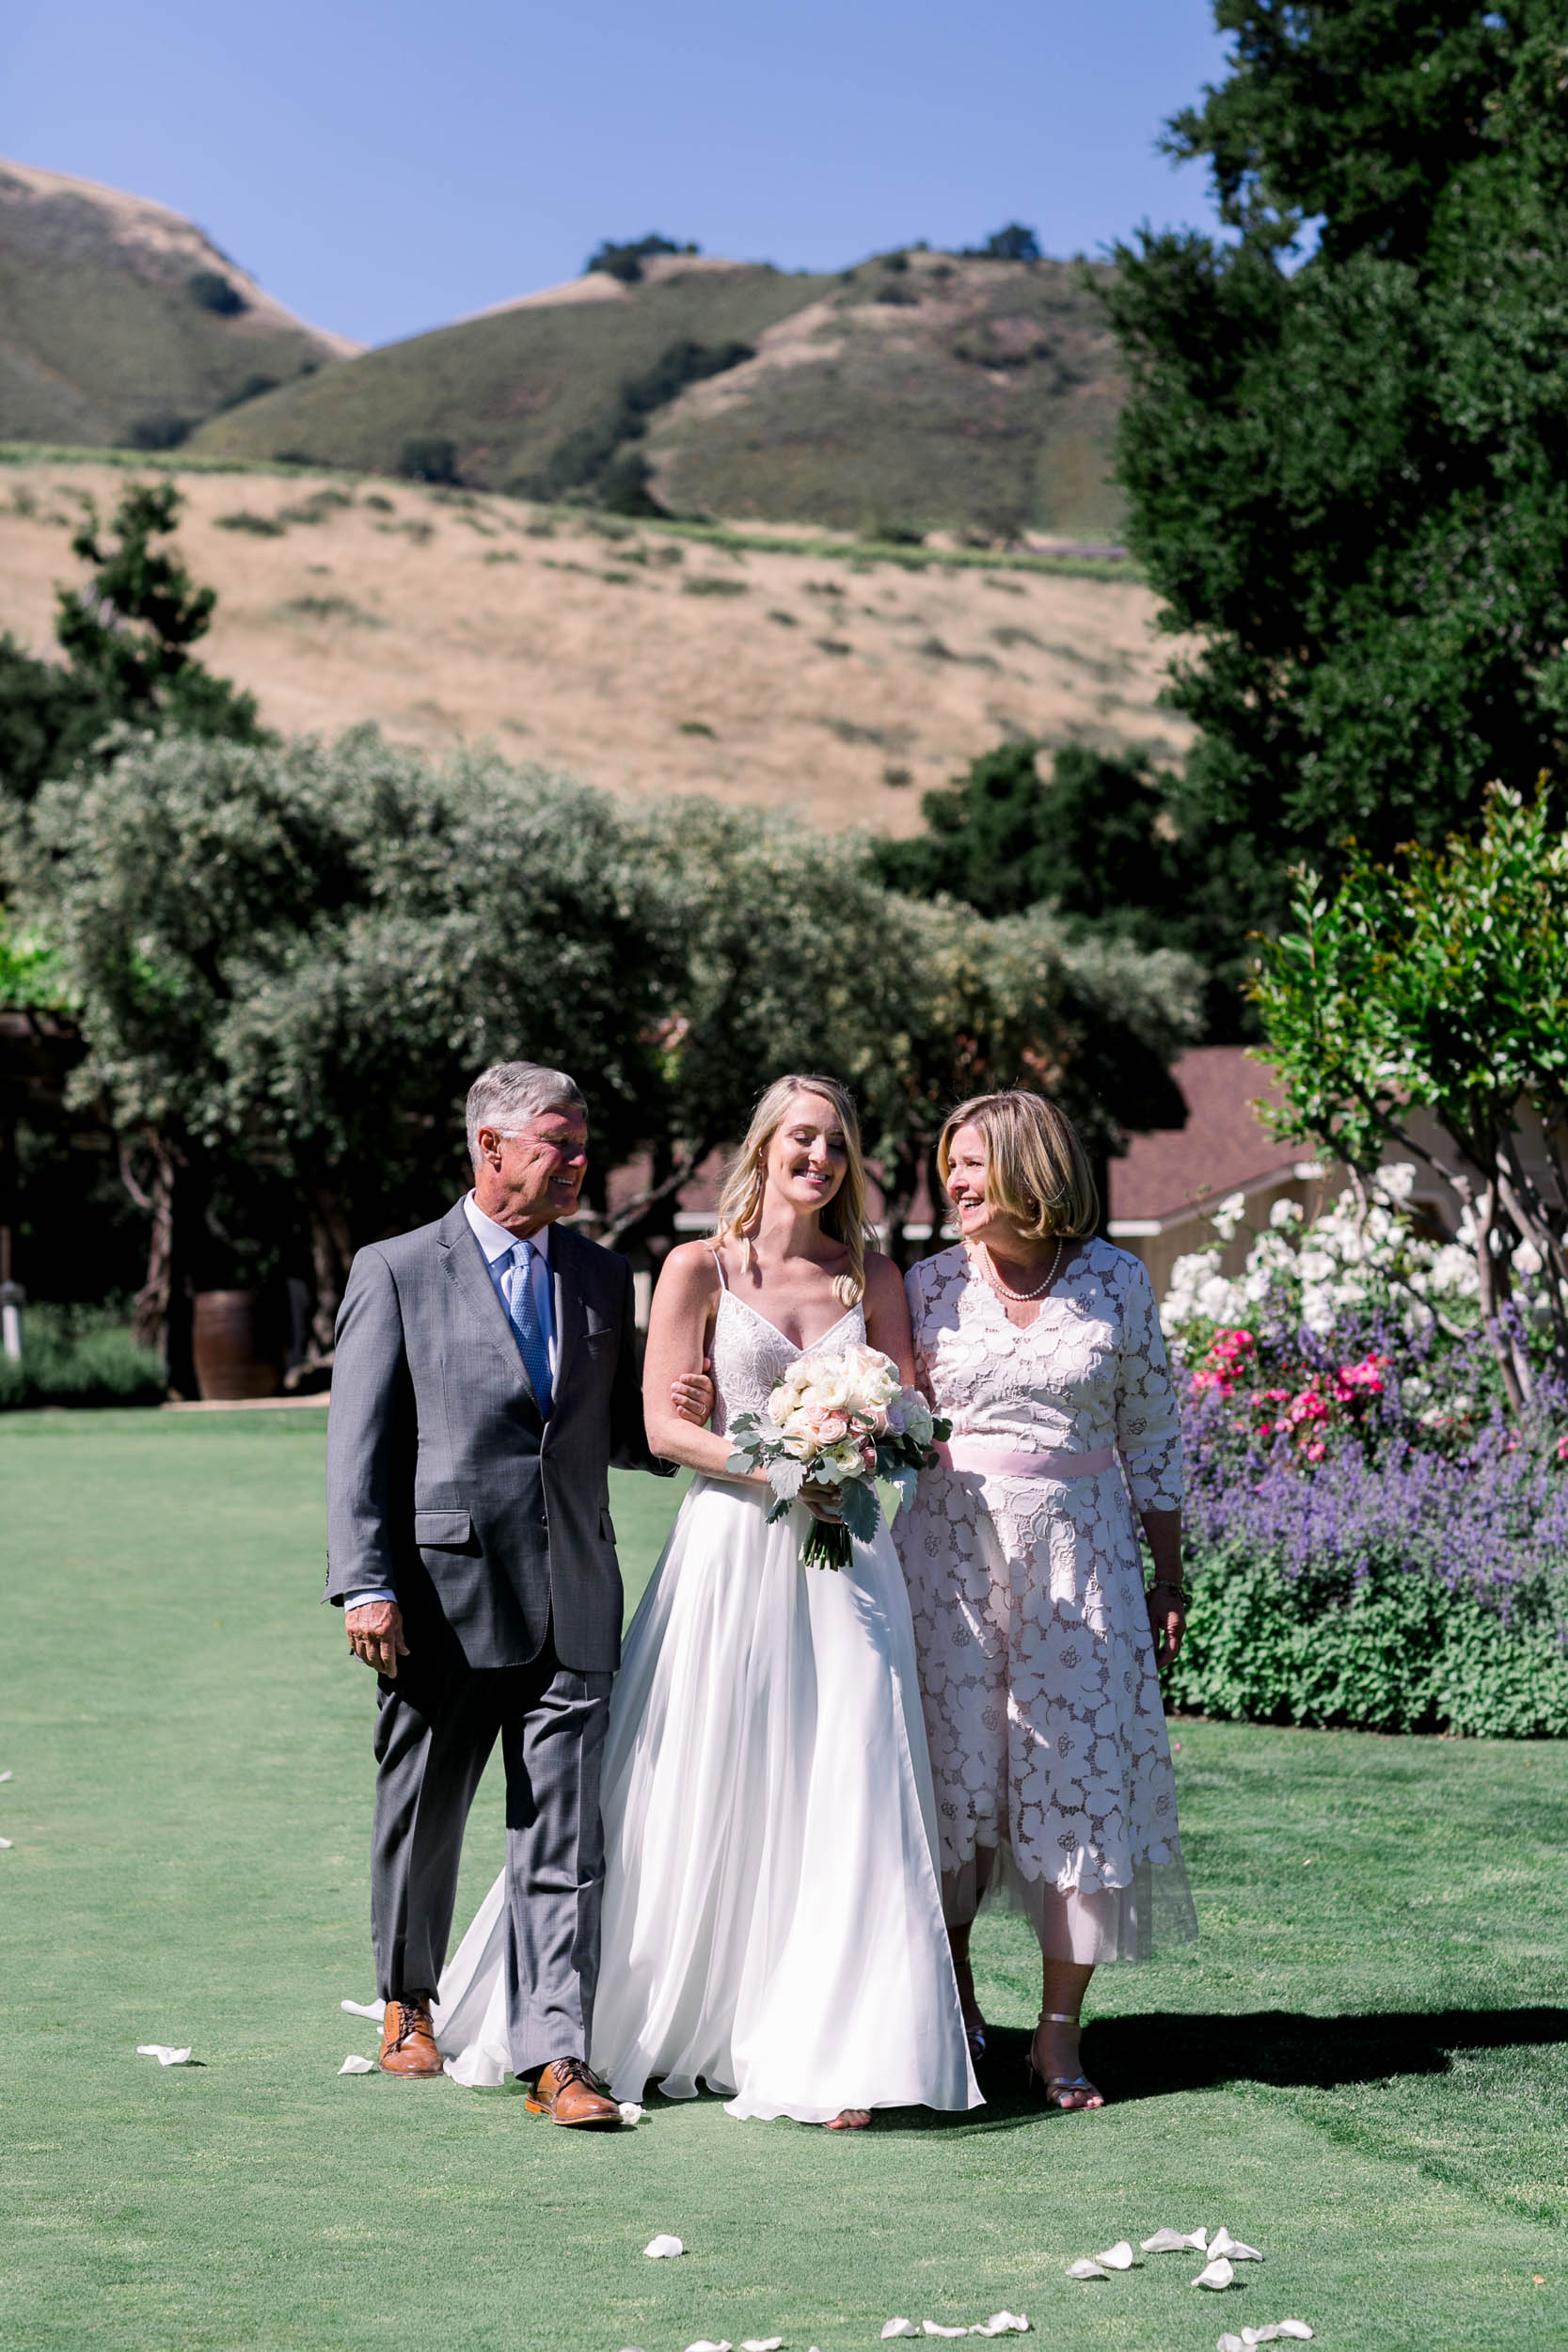 C+D_Holman Ranch Wedding_Carmel Valley_Buena Lane Photography_060619_ER233.jpg